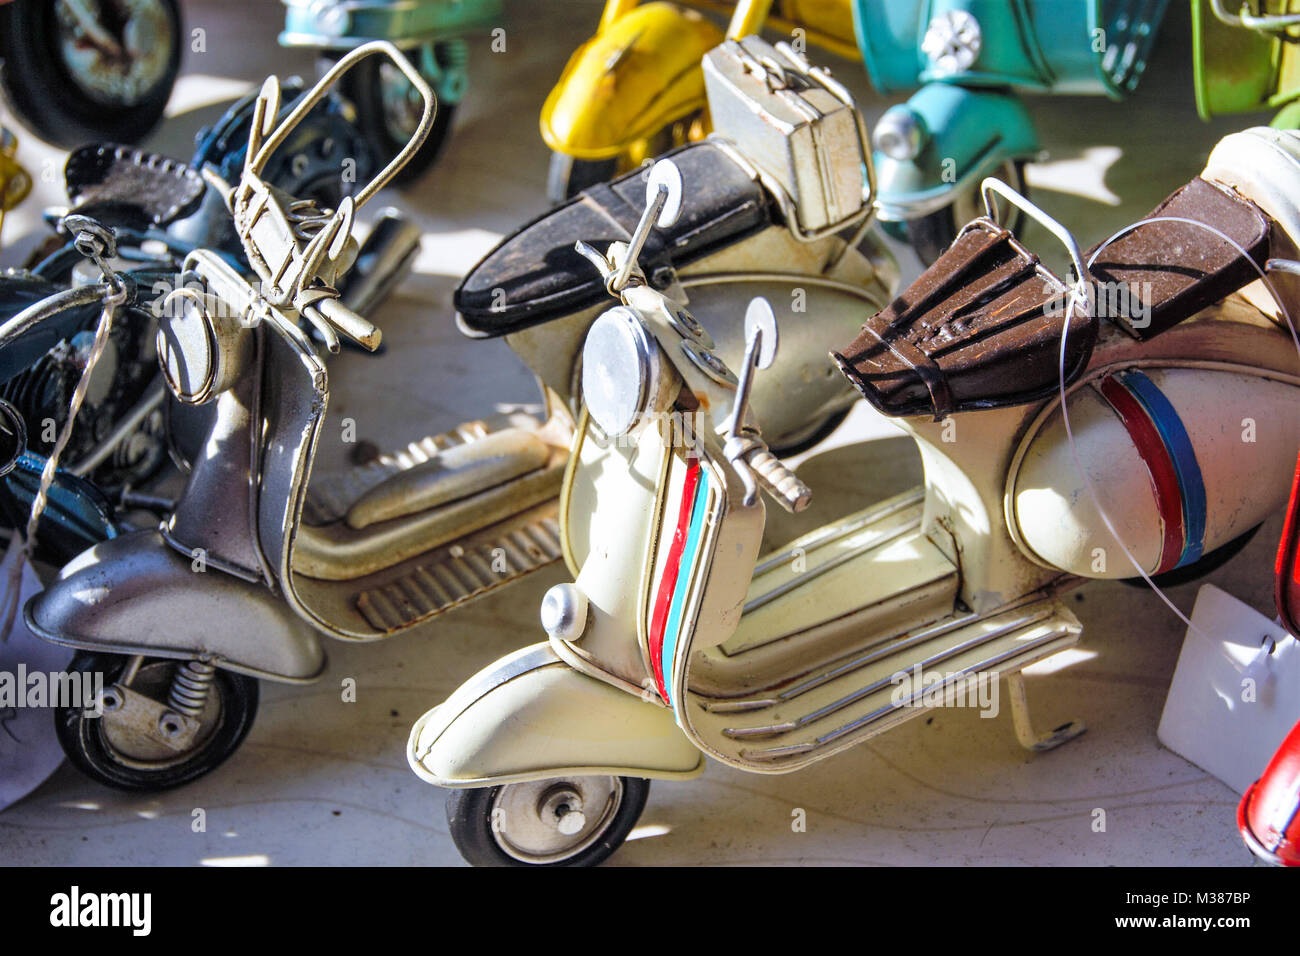 miniatures of iconic  italian scooter also known as vespa Stock Photo